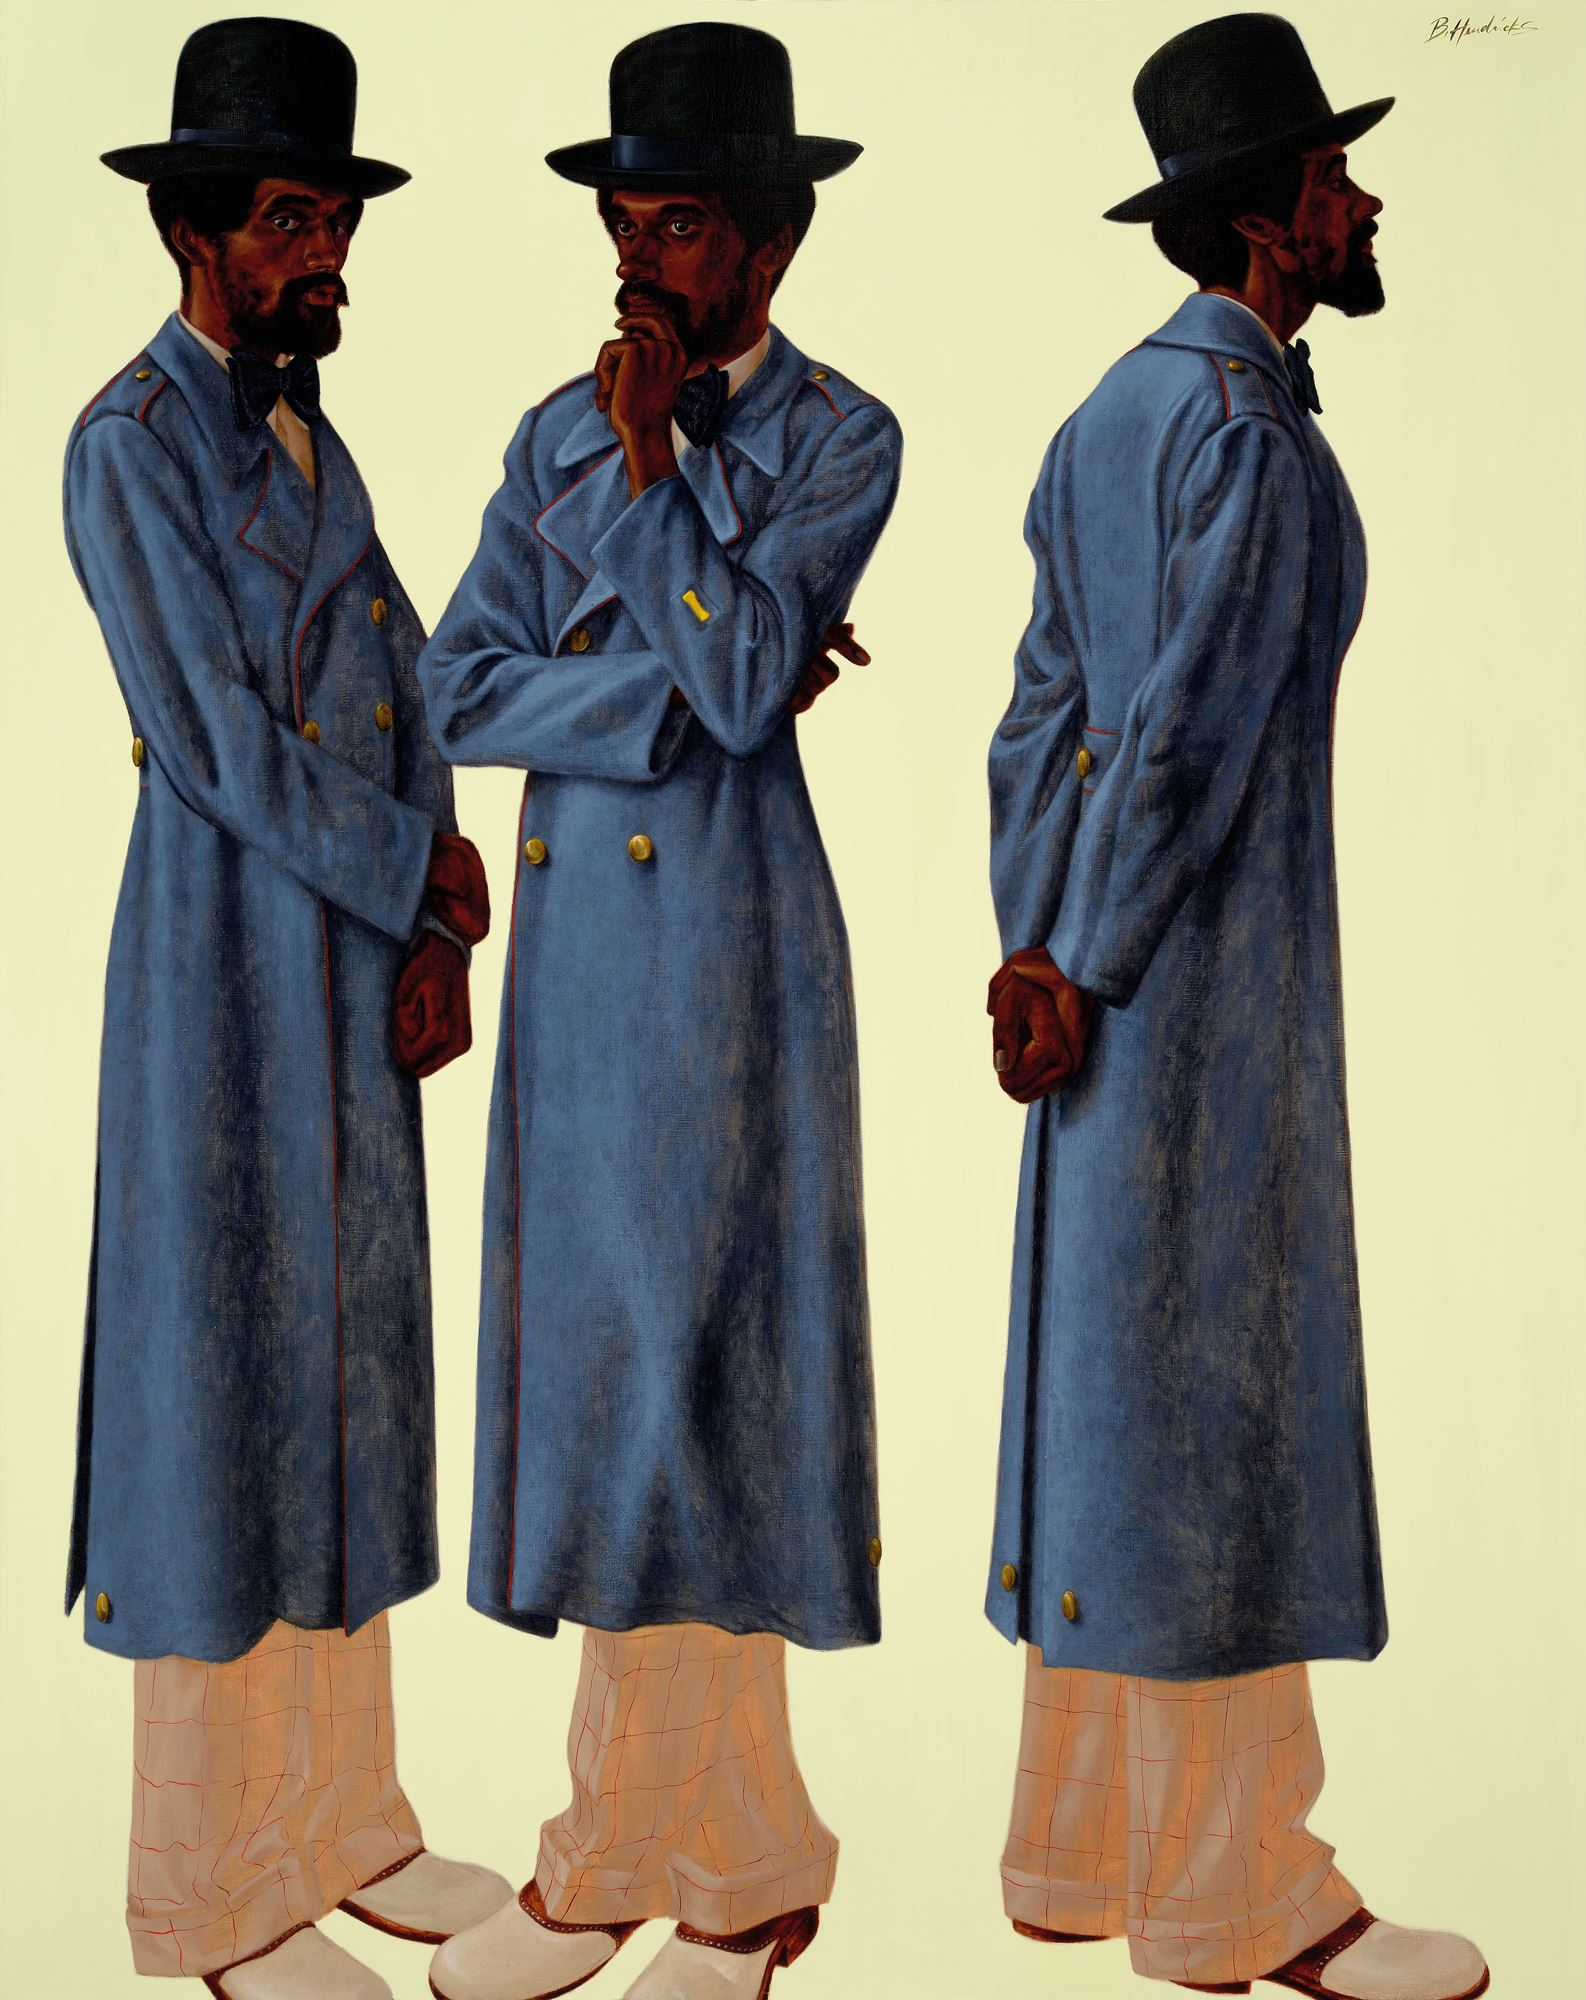 <p>Barkley L. Hendricks, <i>Bahsir (Robert Gowens)</i>. Oil and acrylic on canvas, 83 ½ x 66. Collection of the Nasher Museum of Art at Duke University.</p>